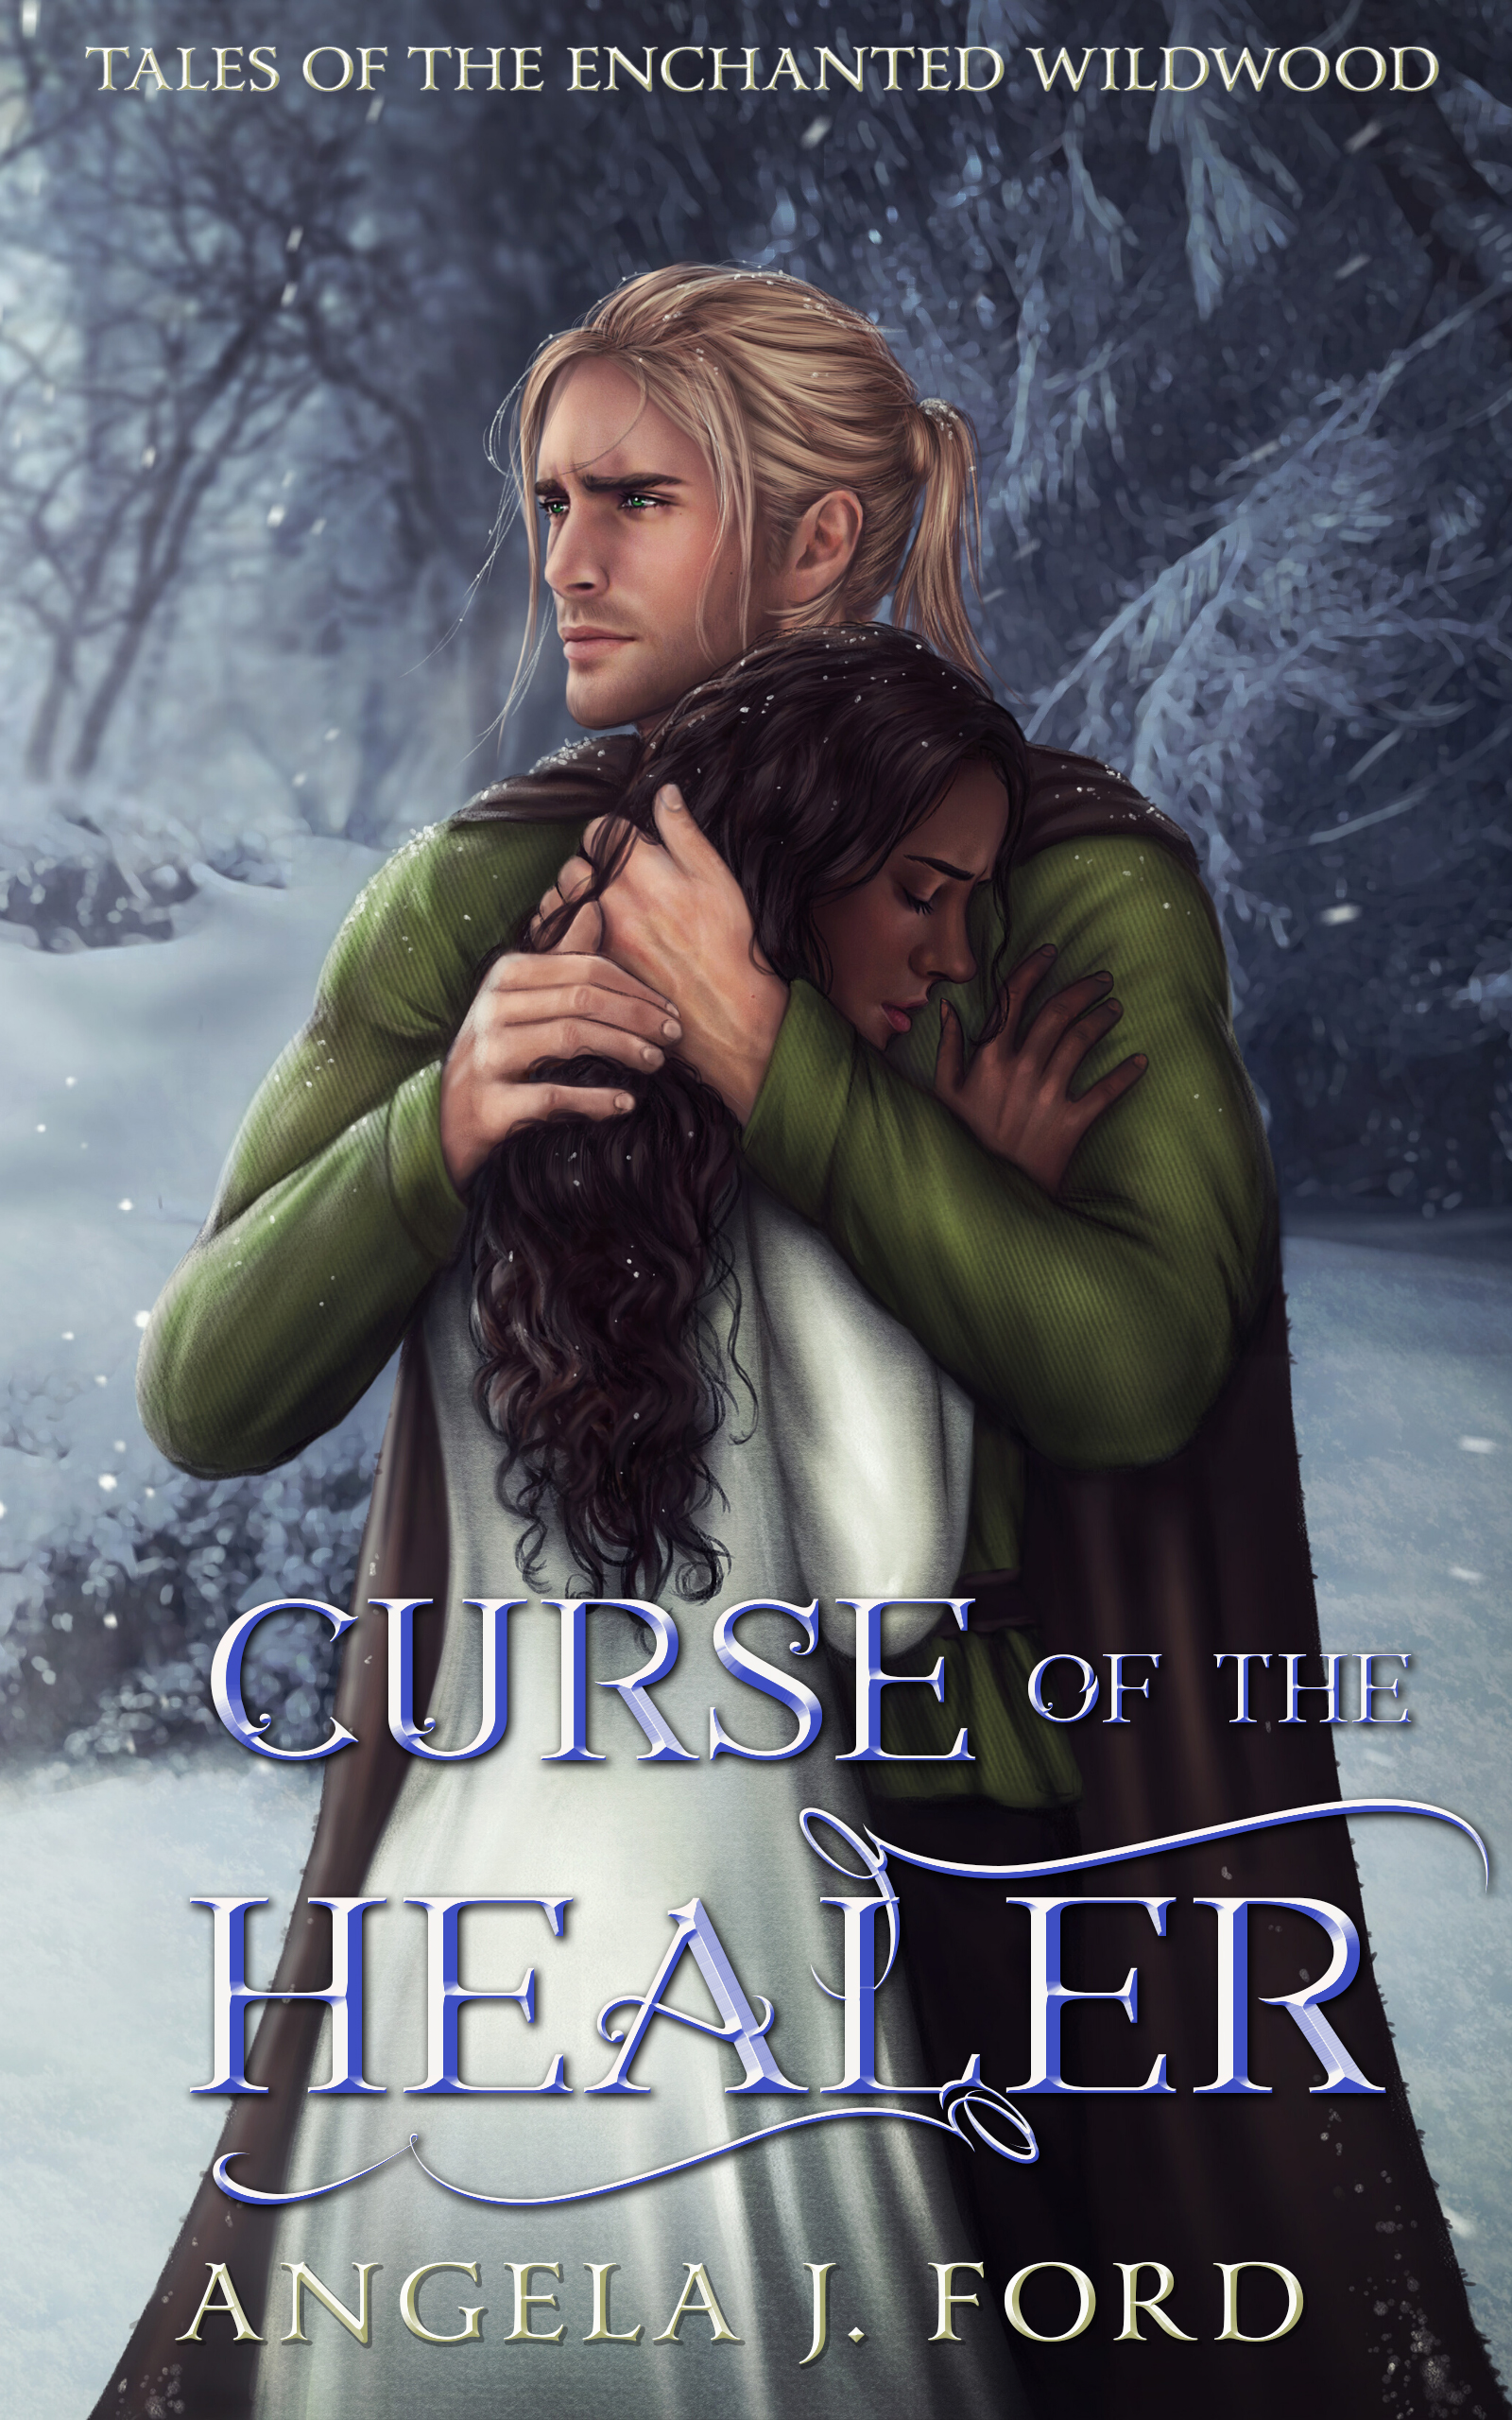 [PDF] [EPUB] Curse of the Healer (Tales of the Enchanted Wildwood #2) Download by Angela J. Ford